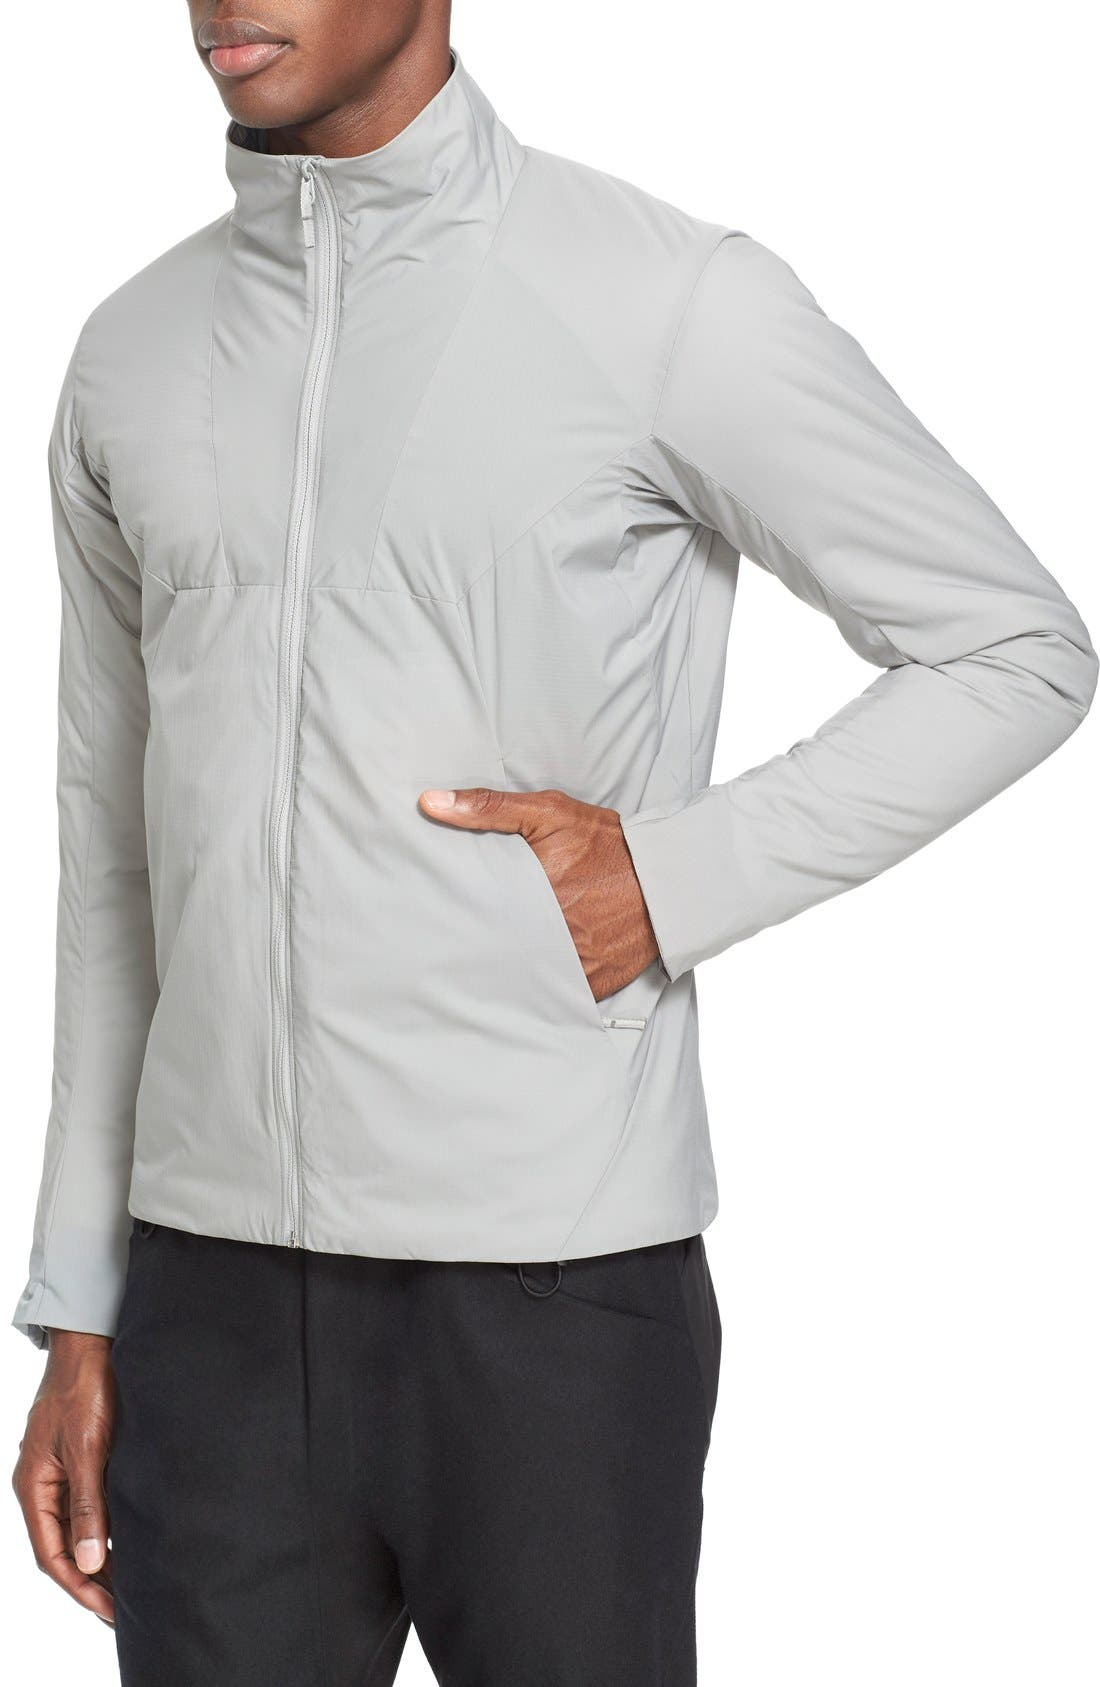 'MionnIS' Water ResistantJacket,                             Alternate thumbnail 6, color,                             020